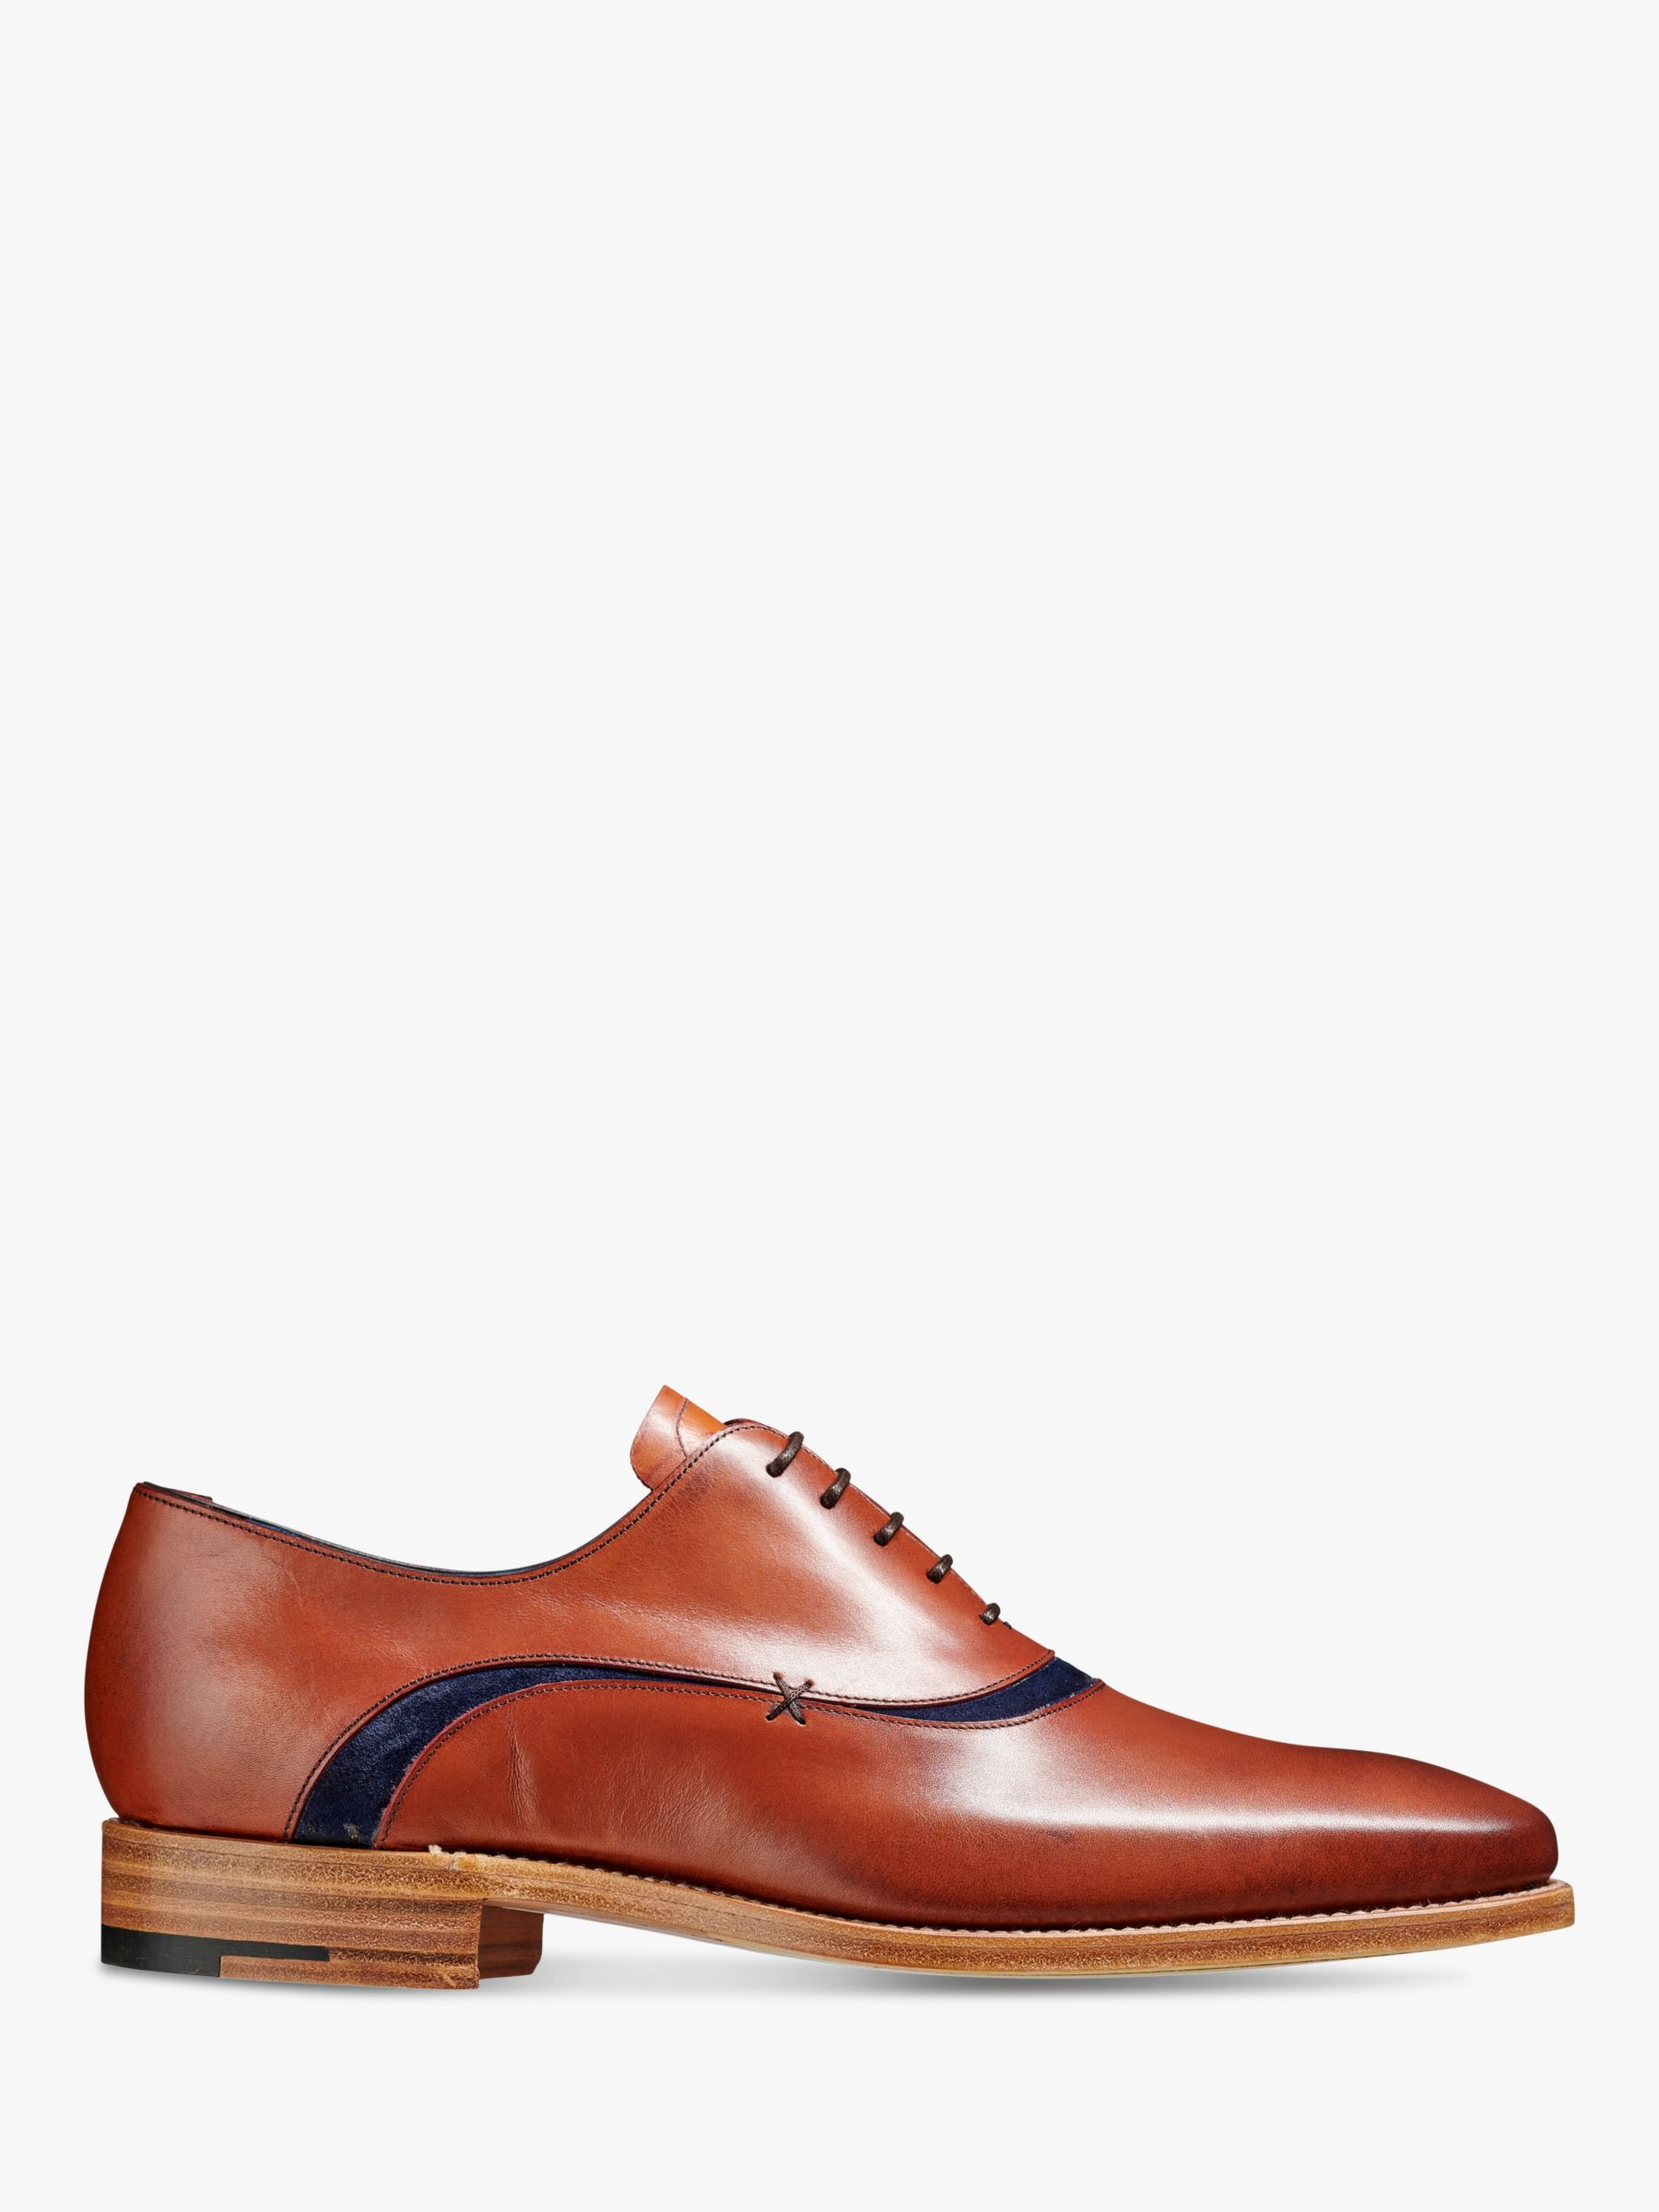 Barker Barker Emerson Leather Shoes, Rosewood/Navy